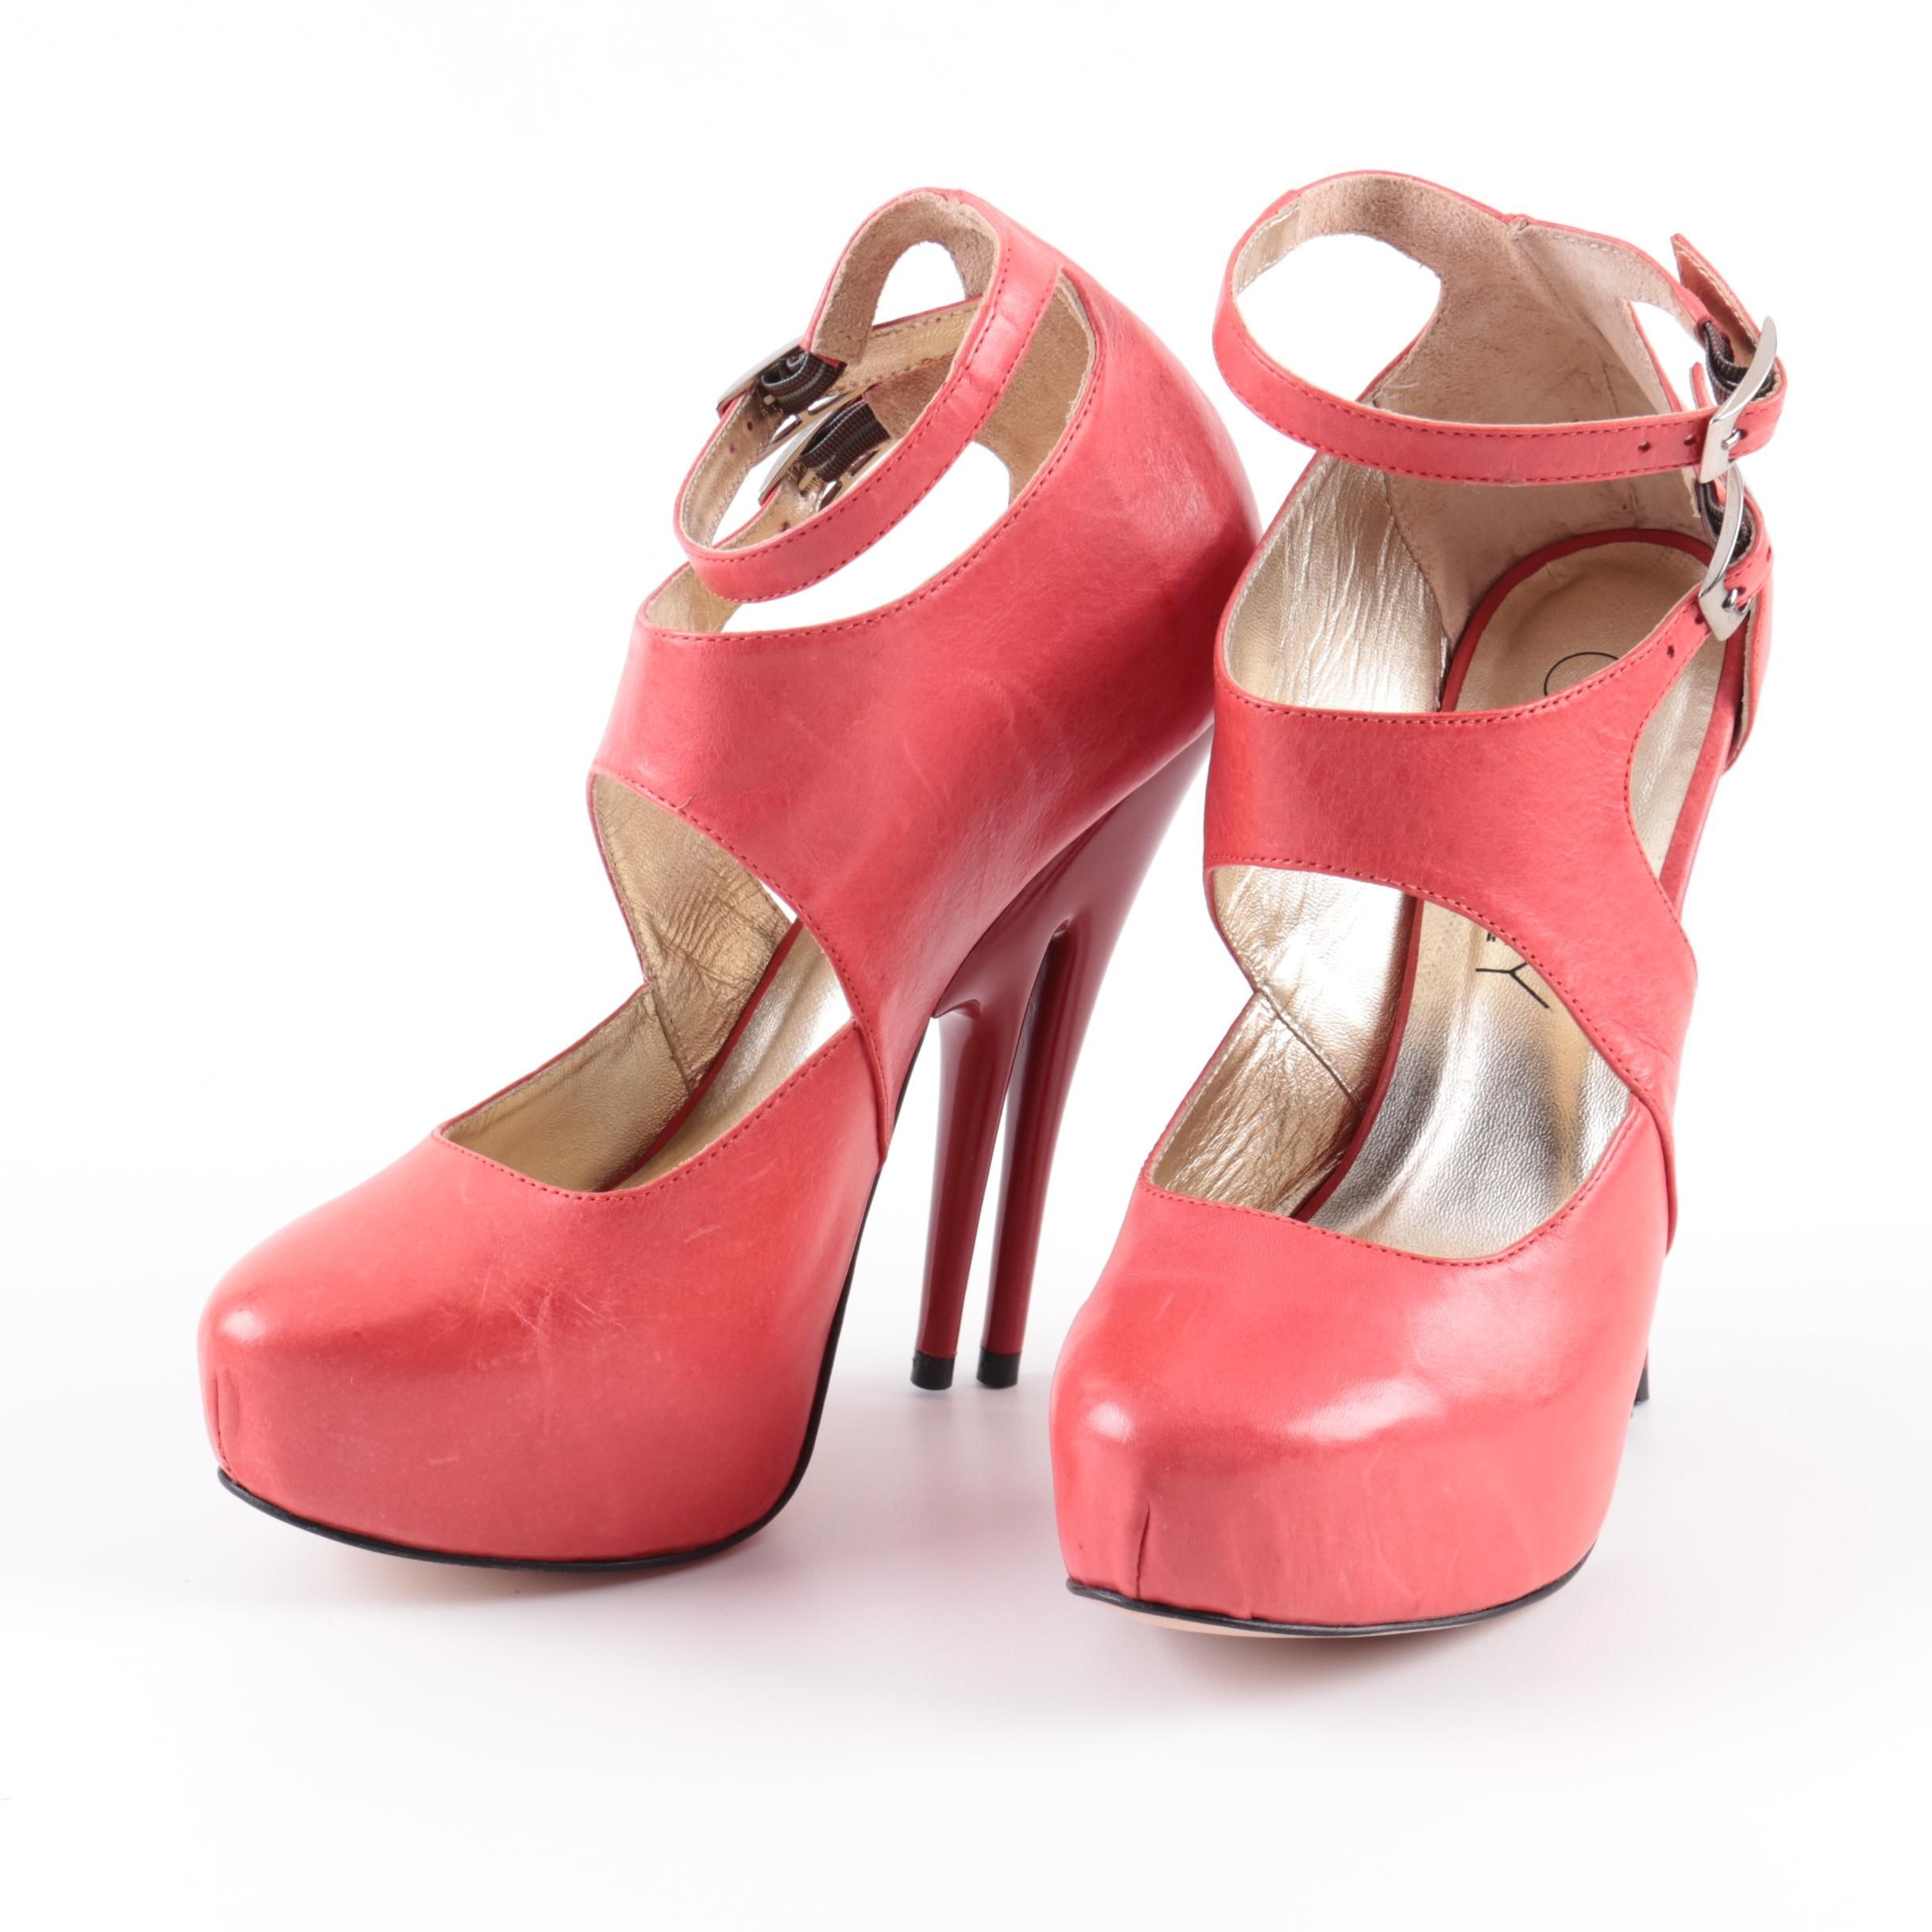 Christopher Coy Dual Heeled Stilettos in Red Leather